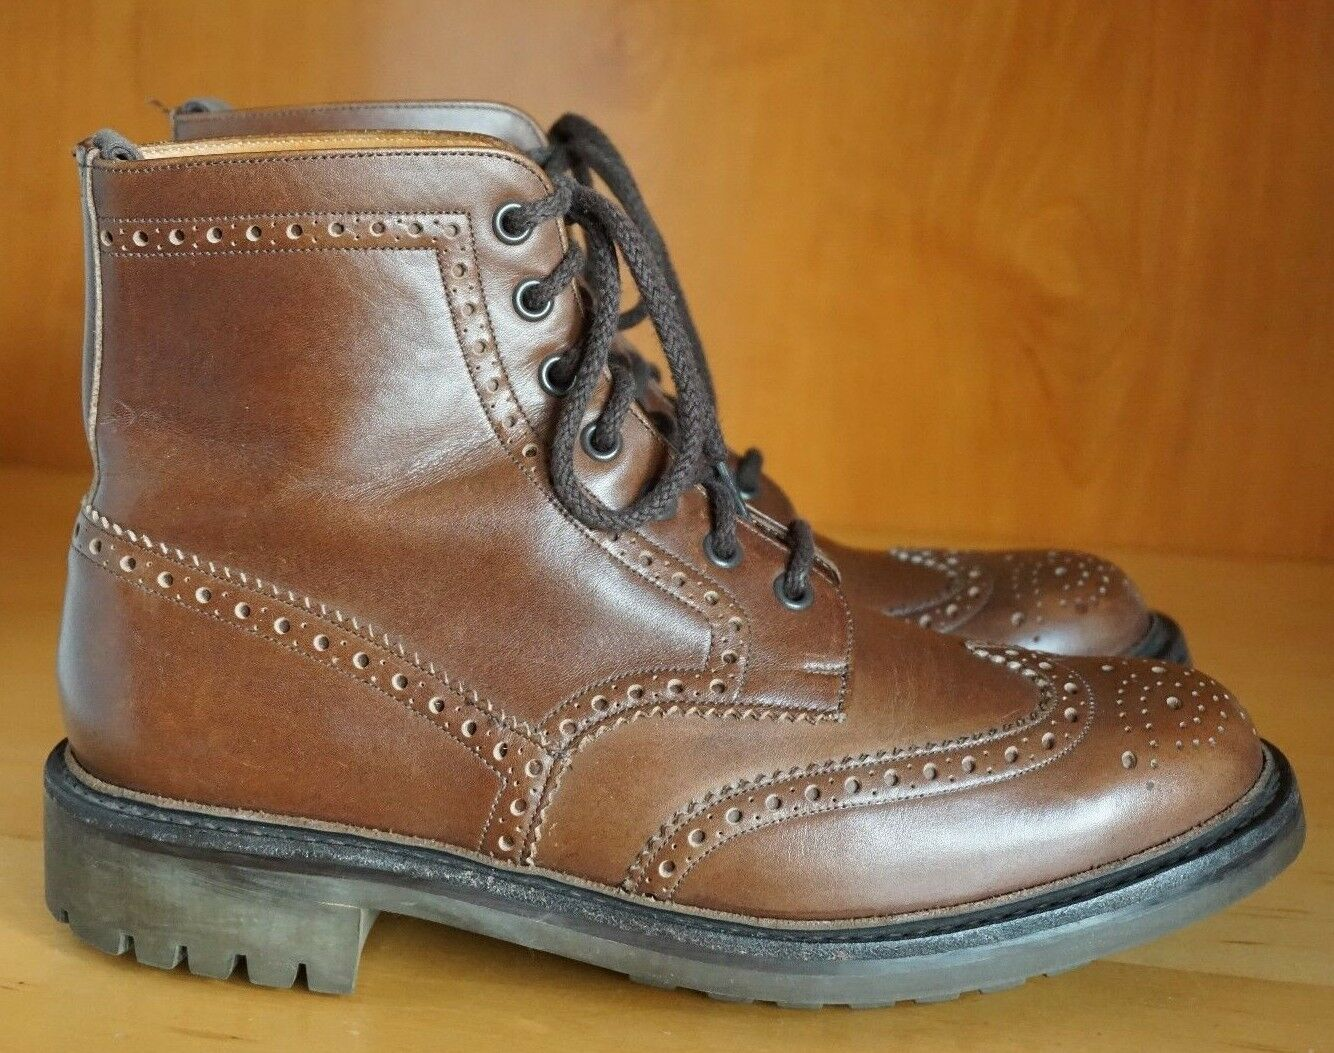 CHURCHS MCFARLAND US 9.5 WINGTIP BROWN COMMANDO OUTSOLE